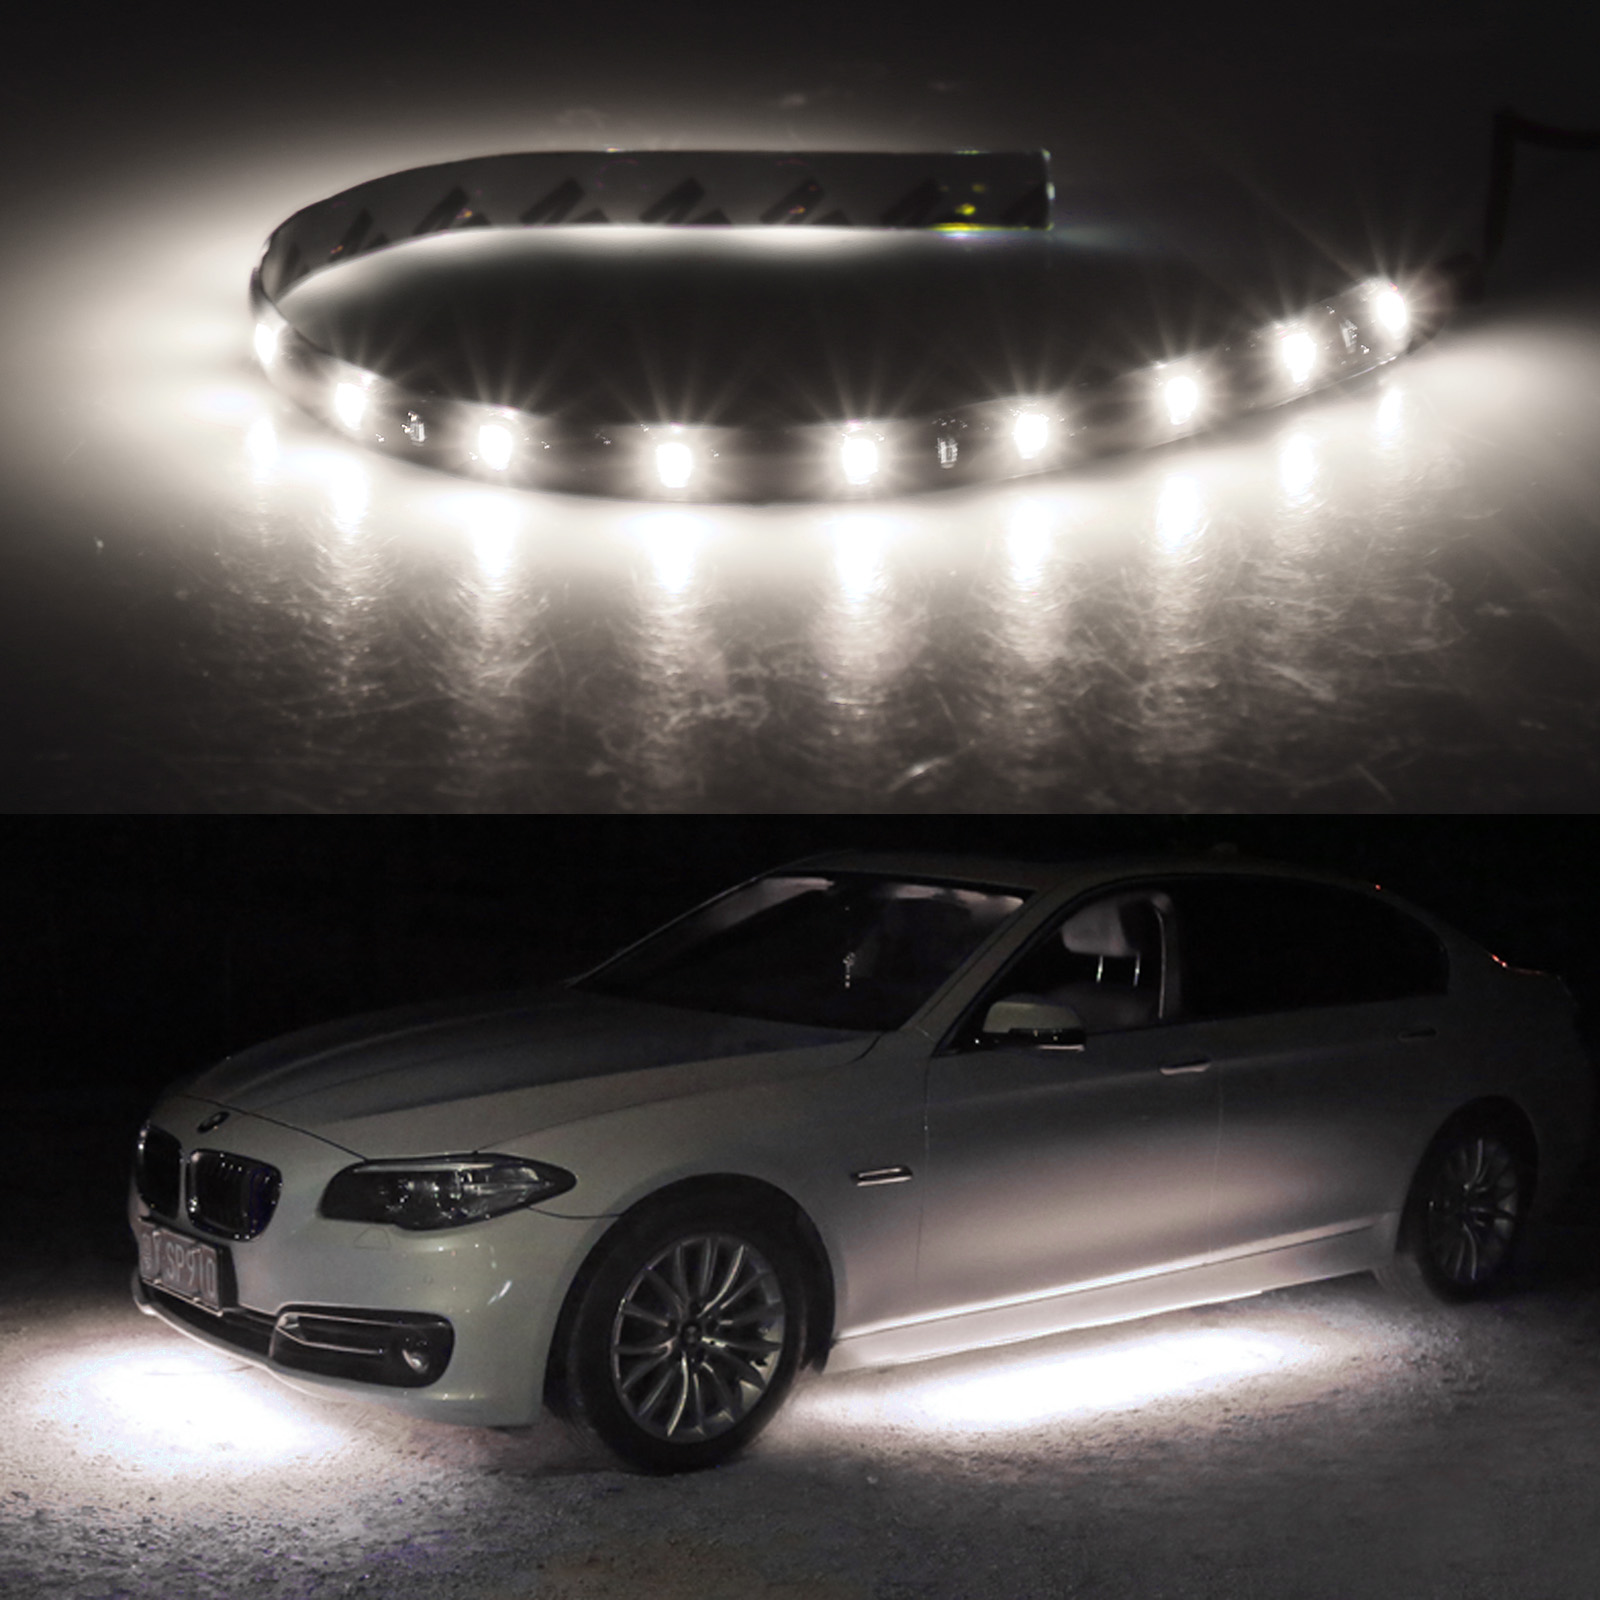 6-12-Pack-Waterproof-Flexible-DC12V-LED-Strip-Underbody-Light-for-Car-Motorcycle thumbnail 17